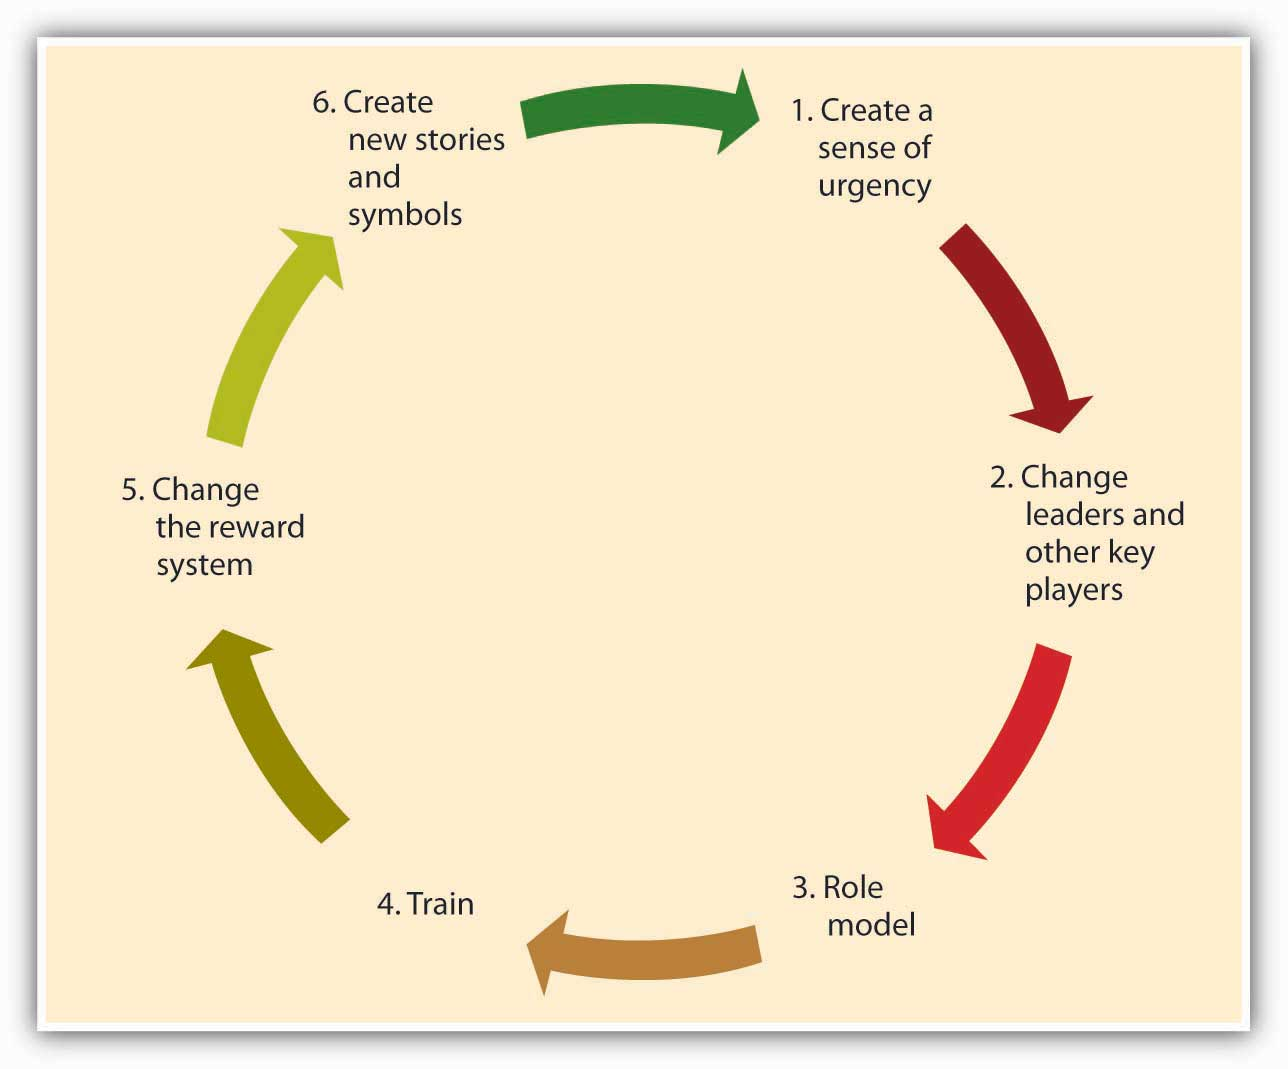 Six Steps to Culture Change: 1) Create a sense of urgency, 2) Change leaders and other key players, 3) Role model, 4) Train, 5) Change the reward system, 6) Create new stories and symbols